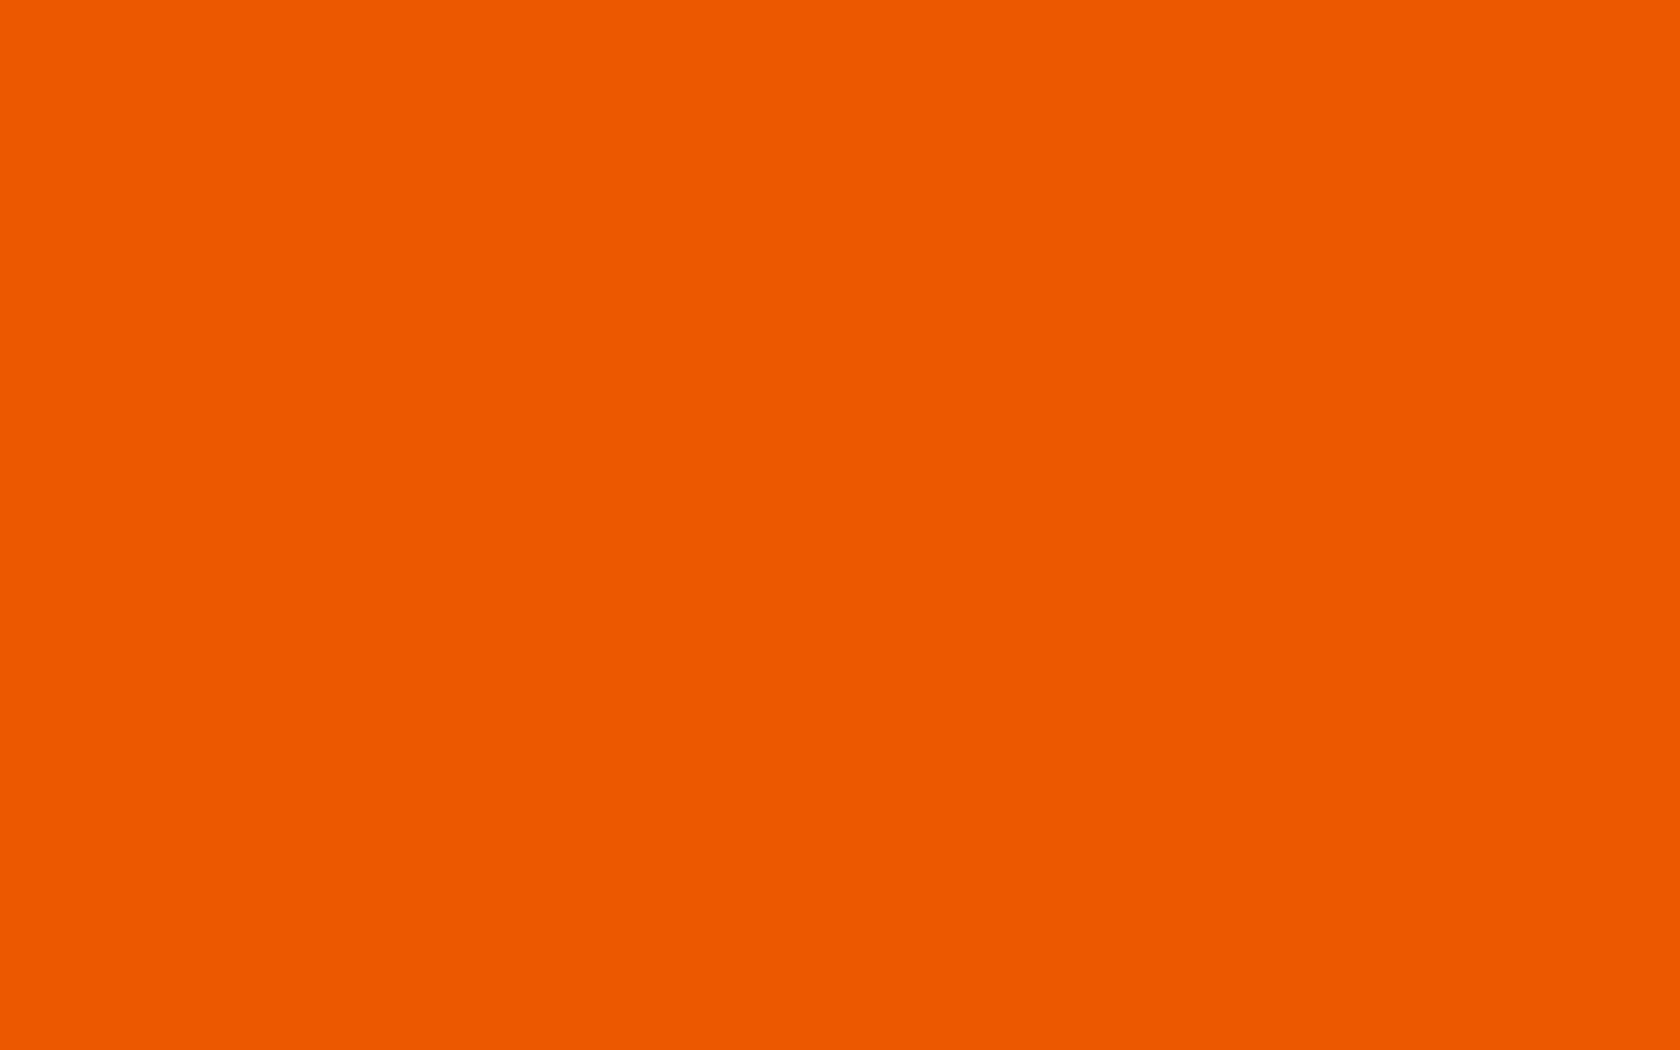 1680x1050 Persimmon Solid Color Background